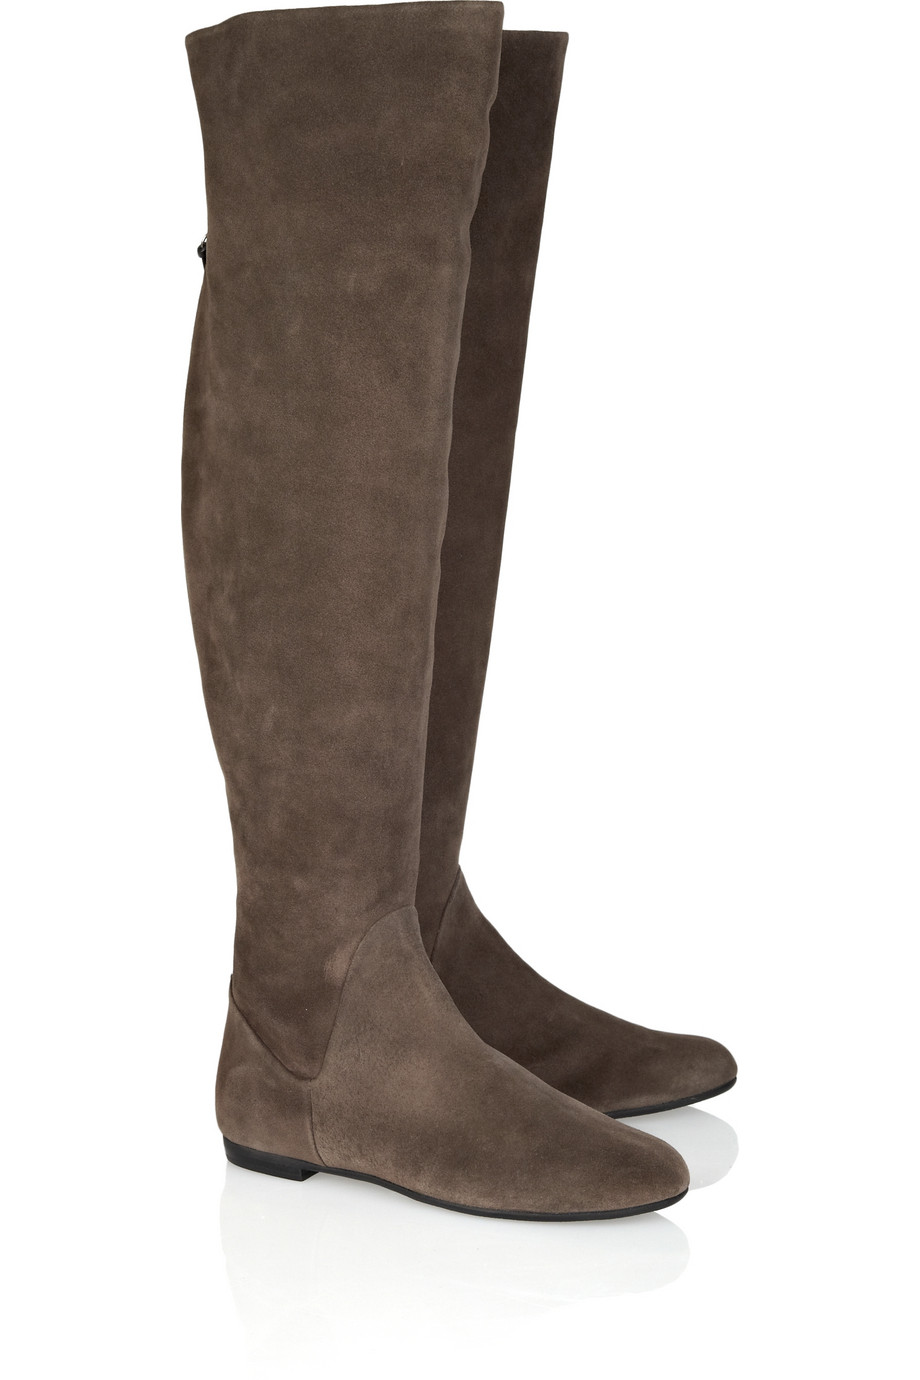 The boots are beautiful I love the look but I was hoping I could wear them over skinny jeans or even knitted jeggings but there is a weird line around the middle of .